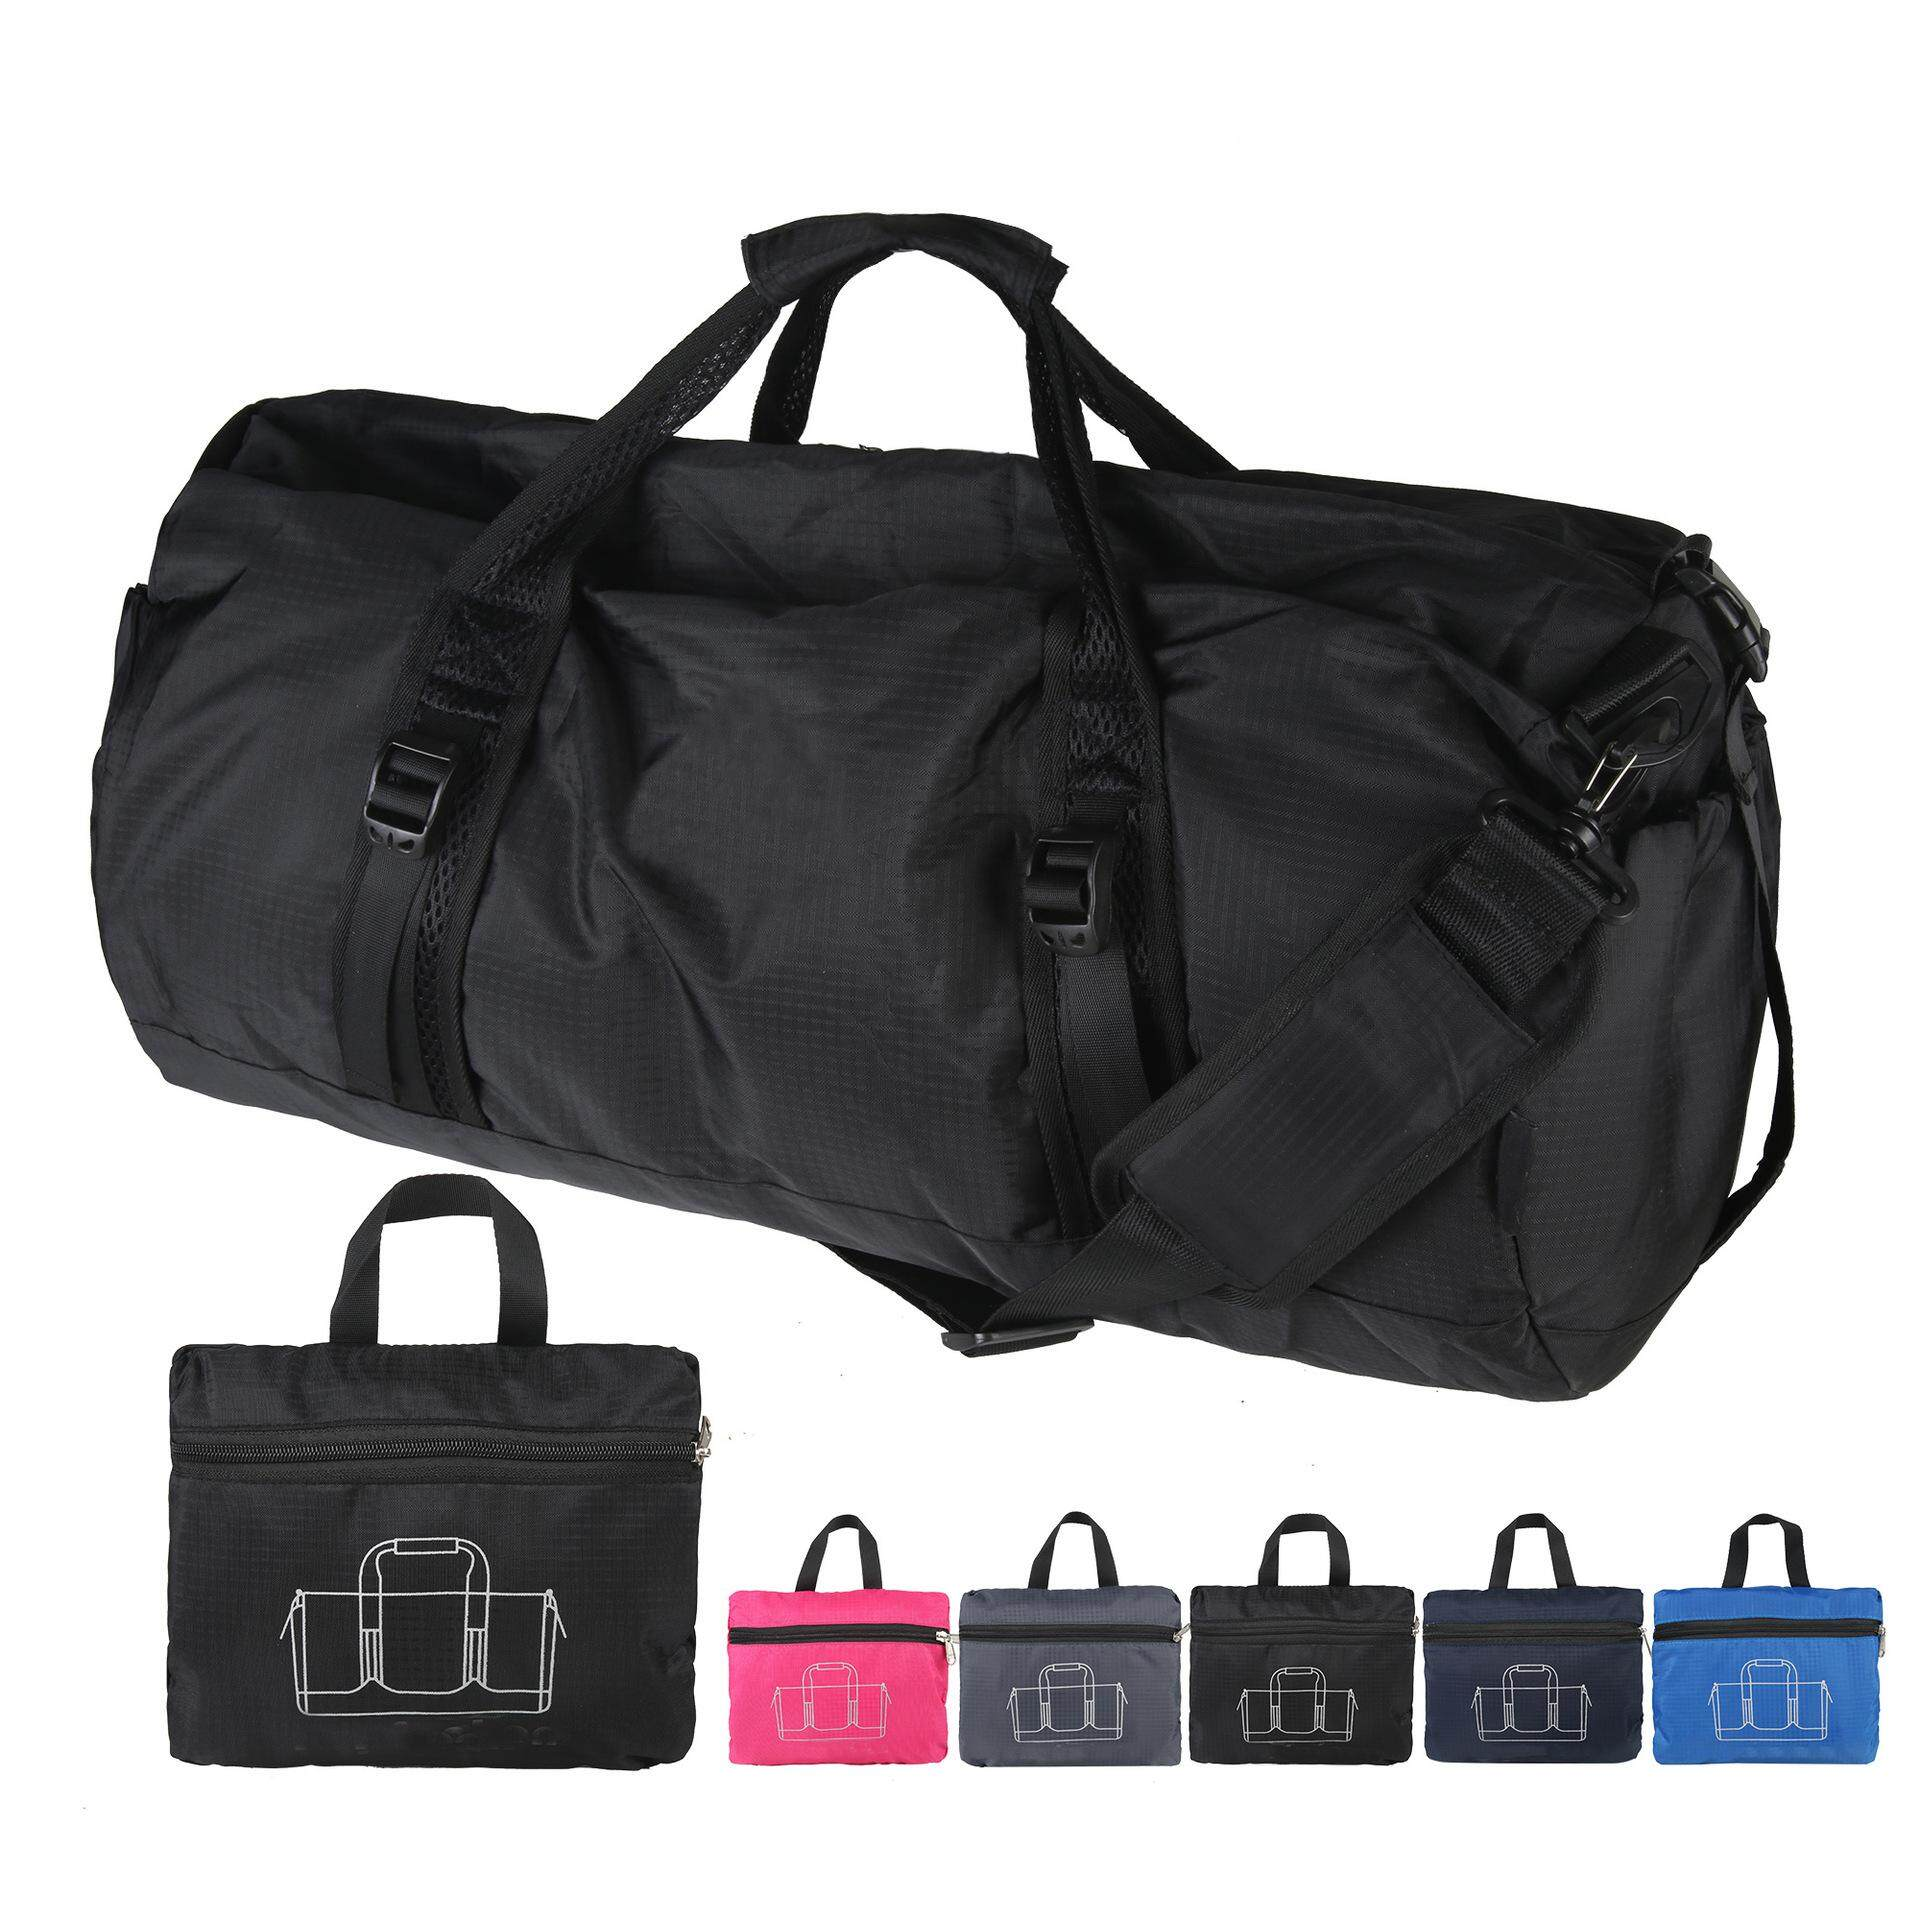 Waterproof Outdoor Male Yoga Duffel Sports Bag Training Gym Bag Men Women  Fitness Bags Travel Shoulder 5d83319f54